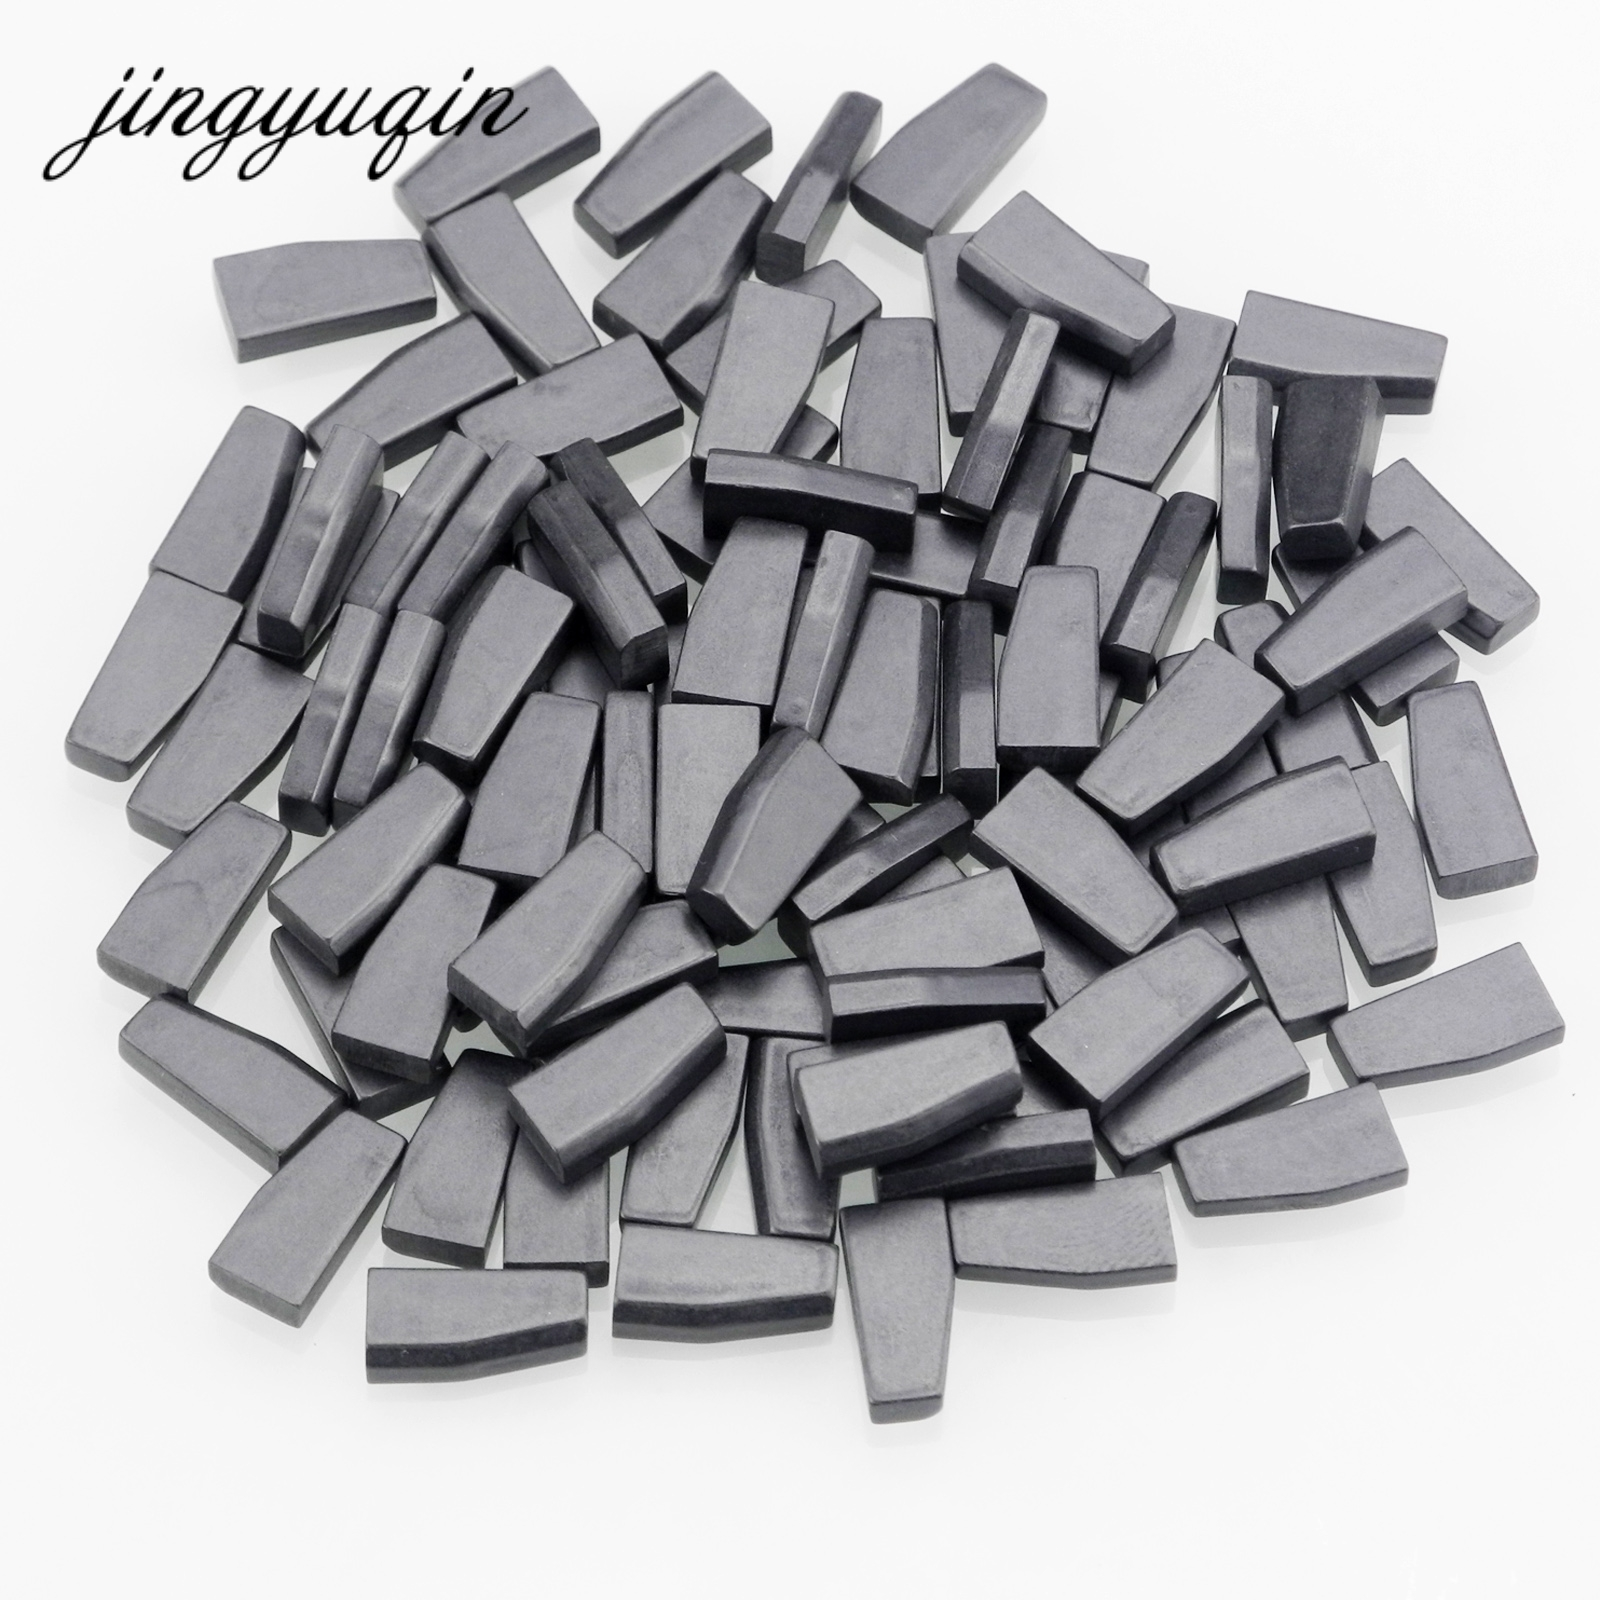 jingyuqin 10pcs/lot Car Key Chip ID44 ID46 ID60 Transponder Chip Carbon PCF7935AA PCF7936/PCF7936AS цены